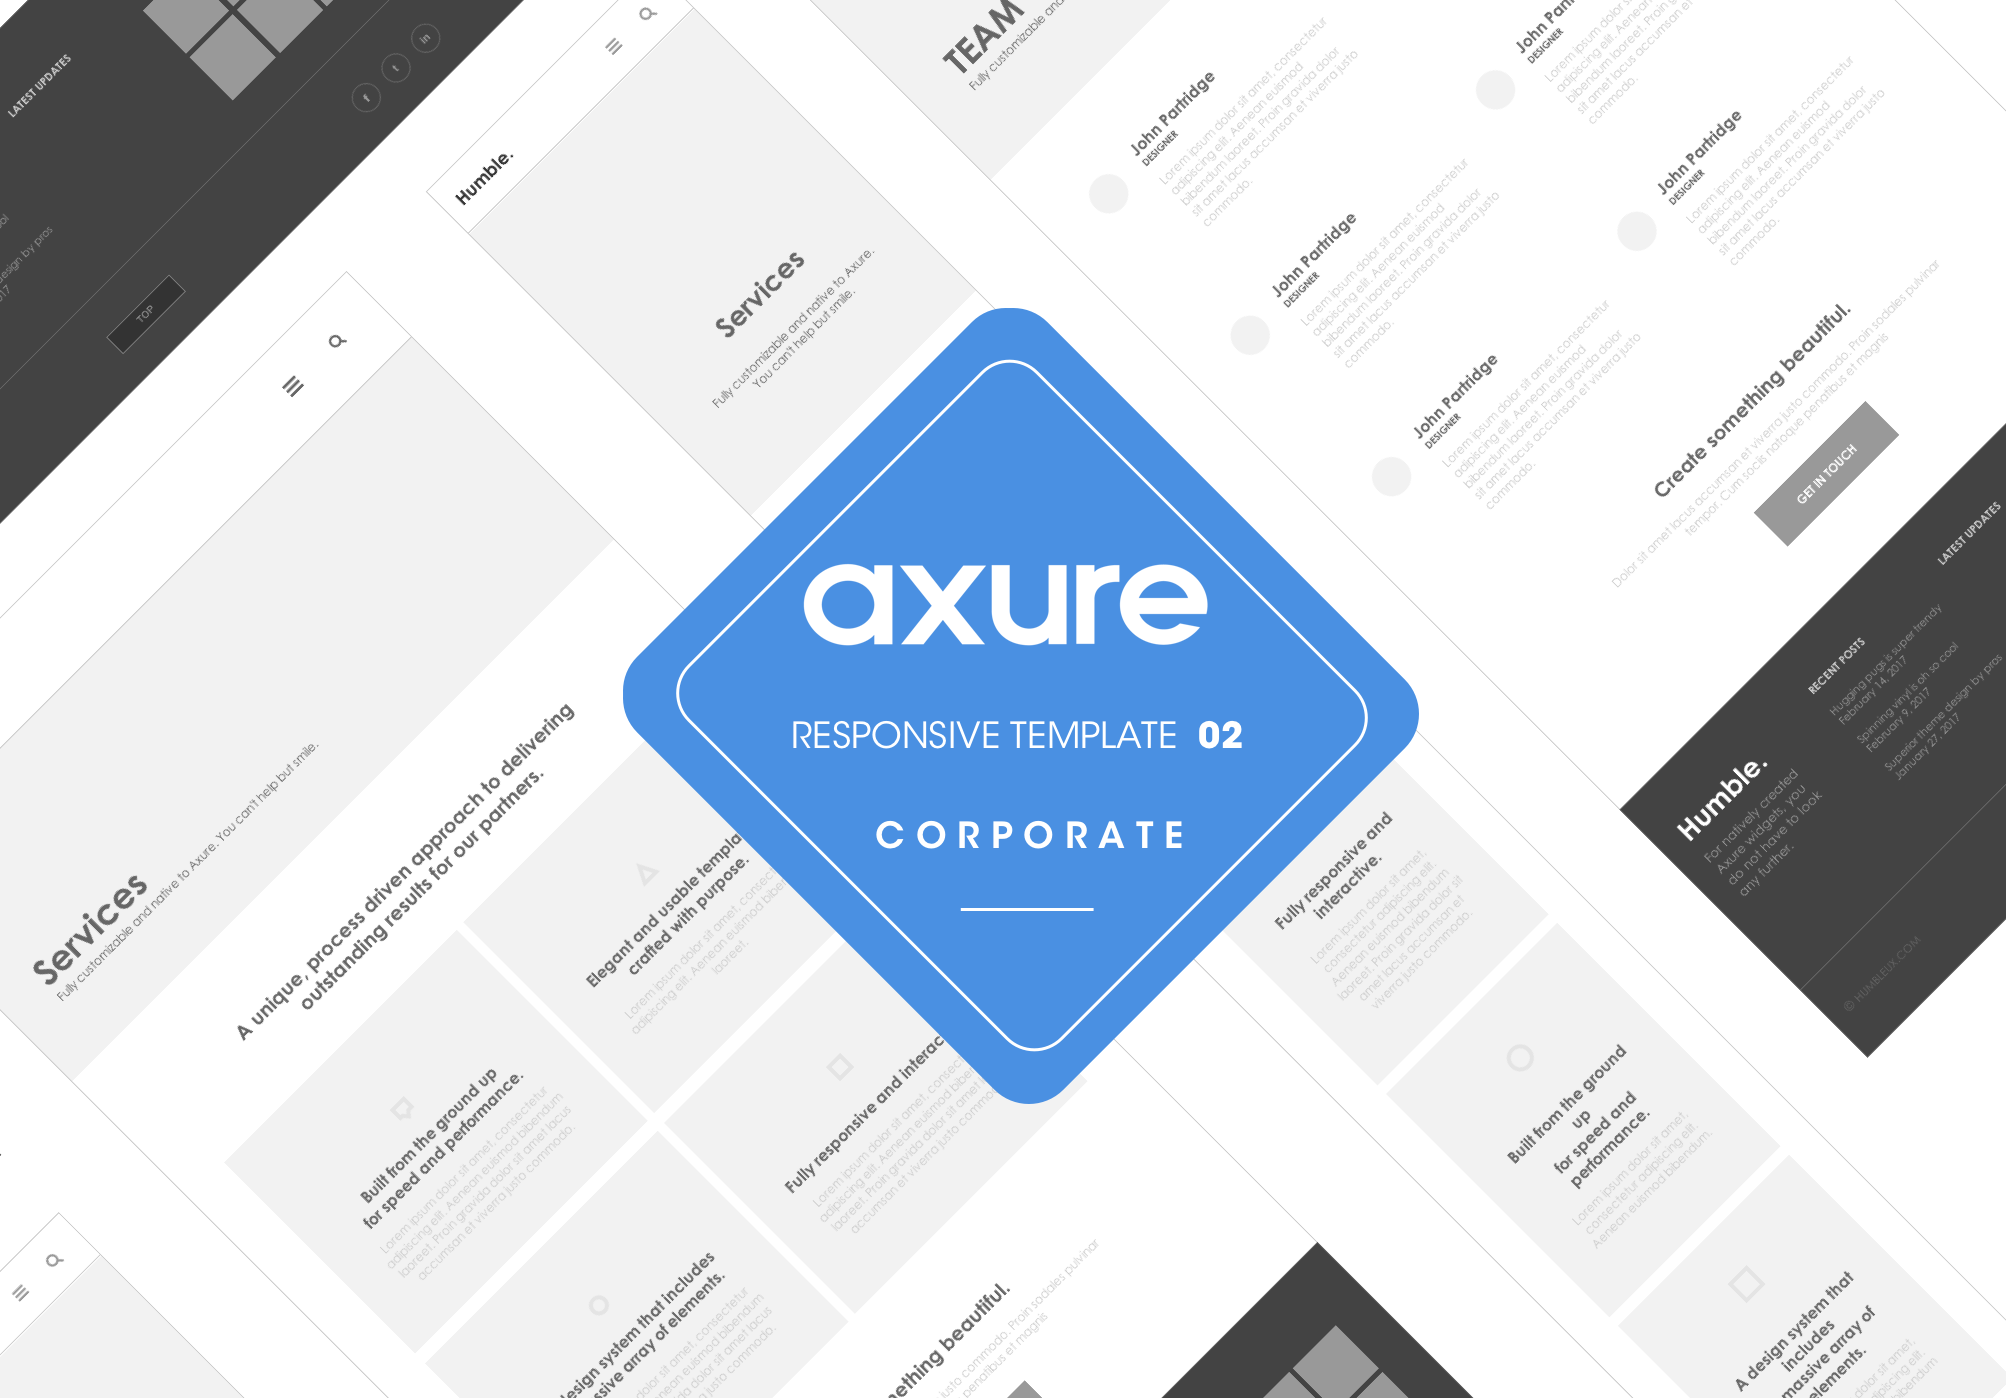 axure tablet template - axure responsive template corporate website